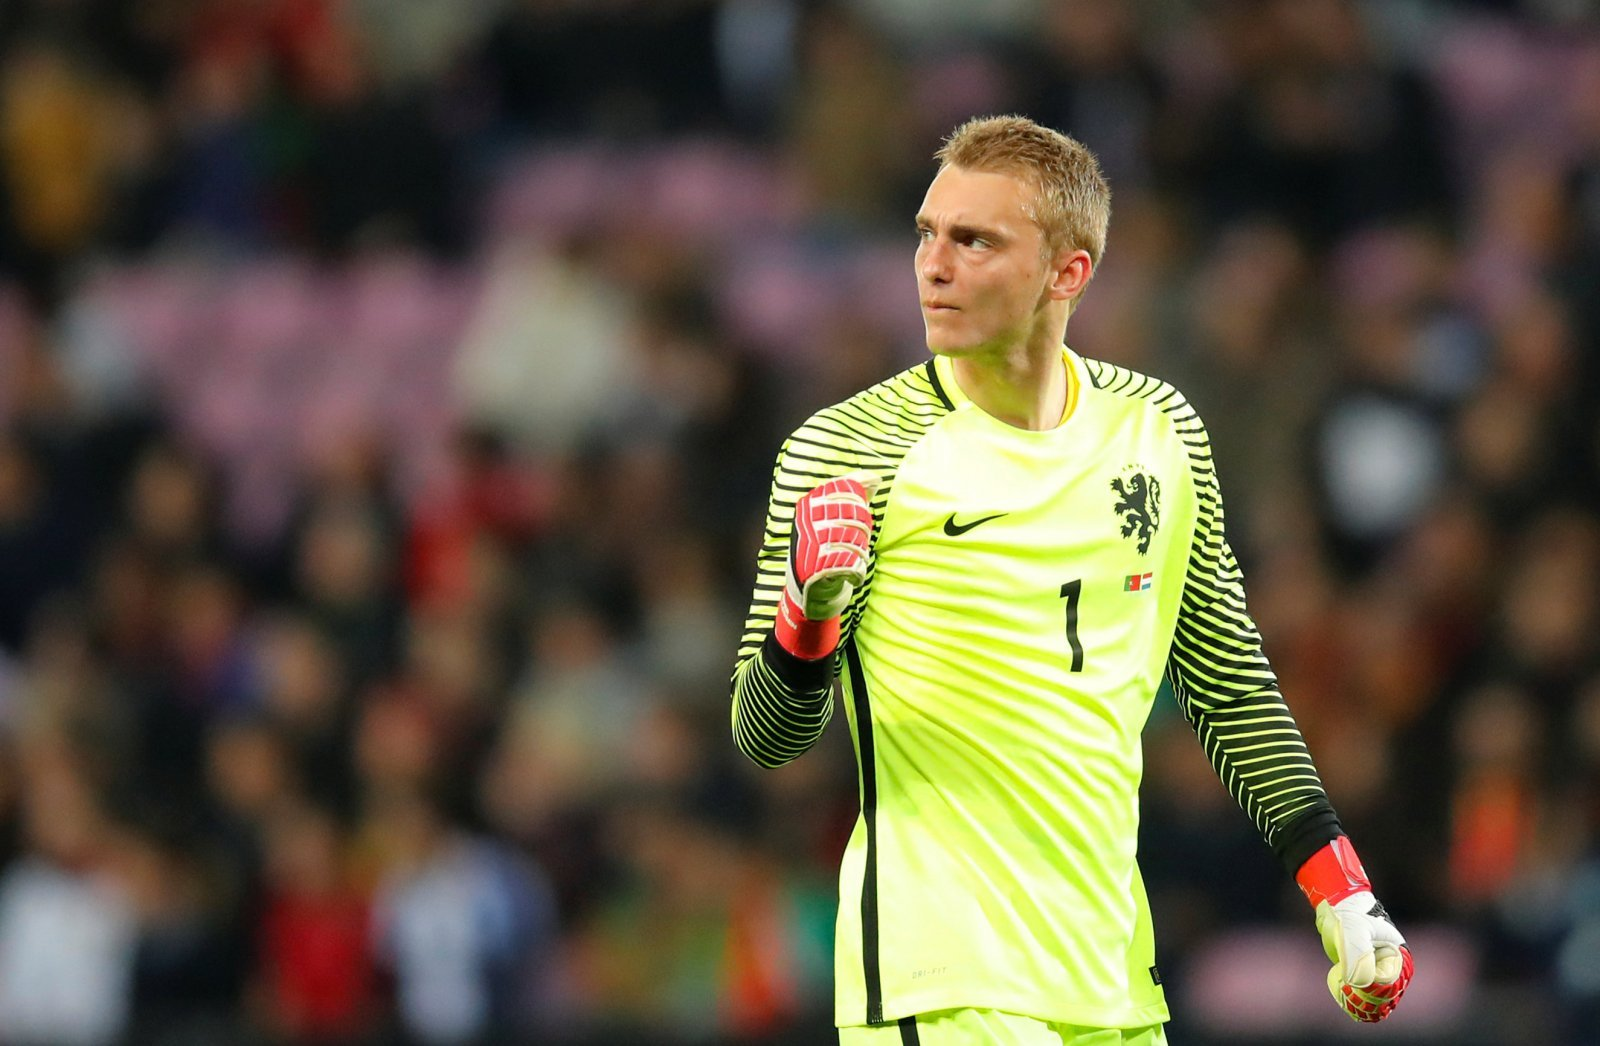 Addition of Jasper Cillessen still wouldn't see Liverpool bridge the gap to Man City